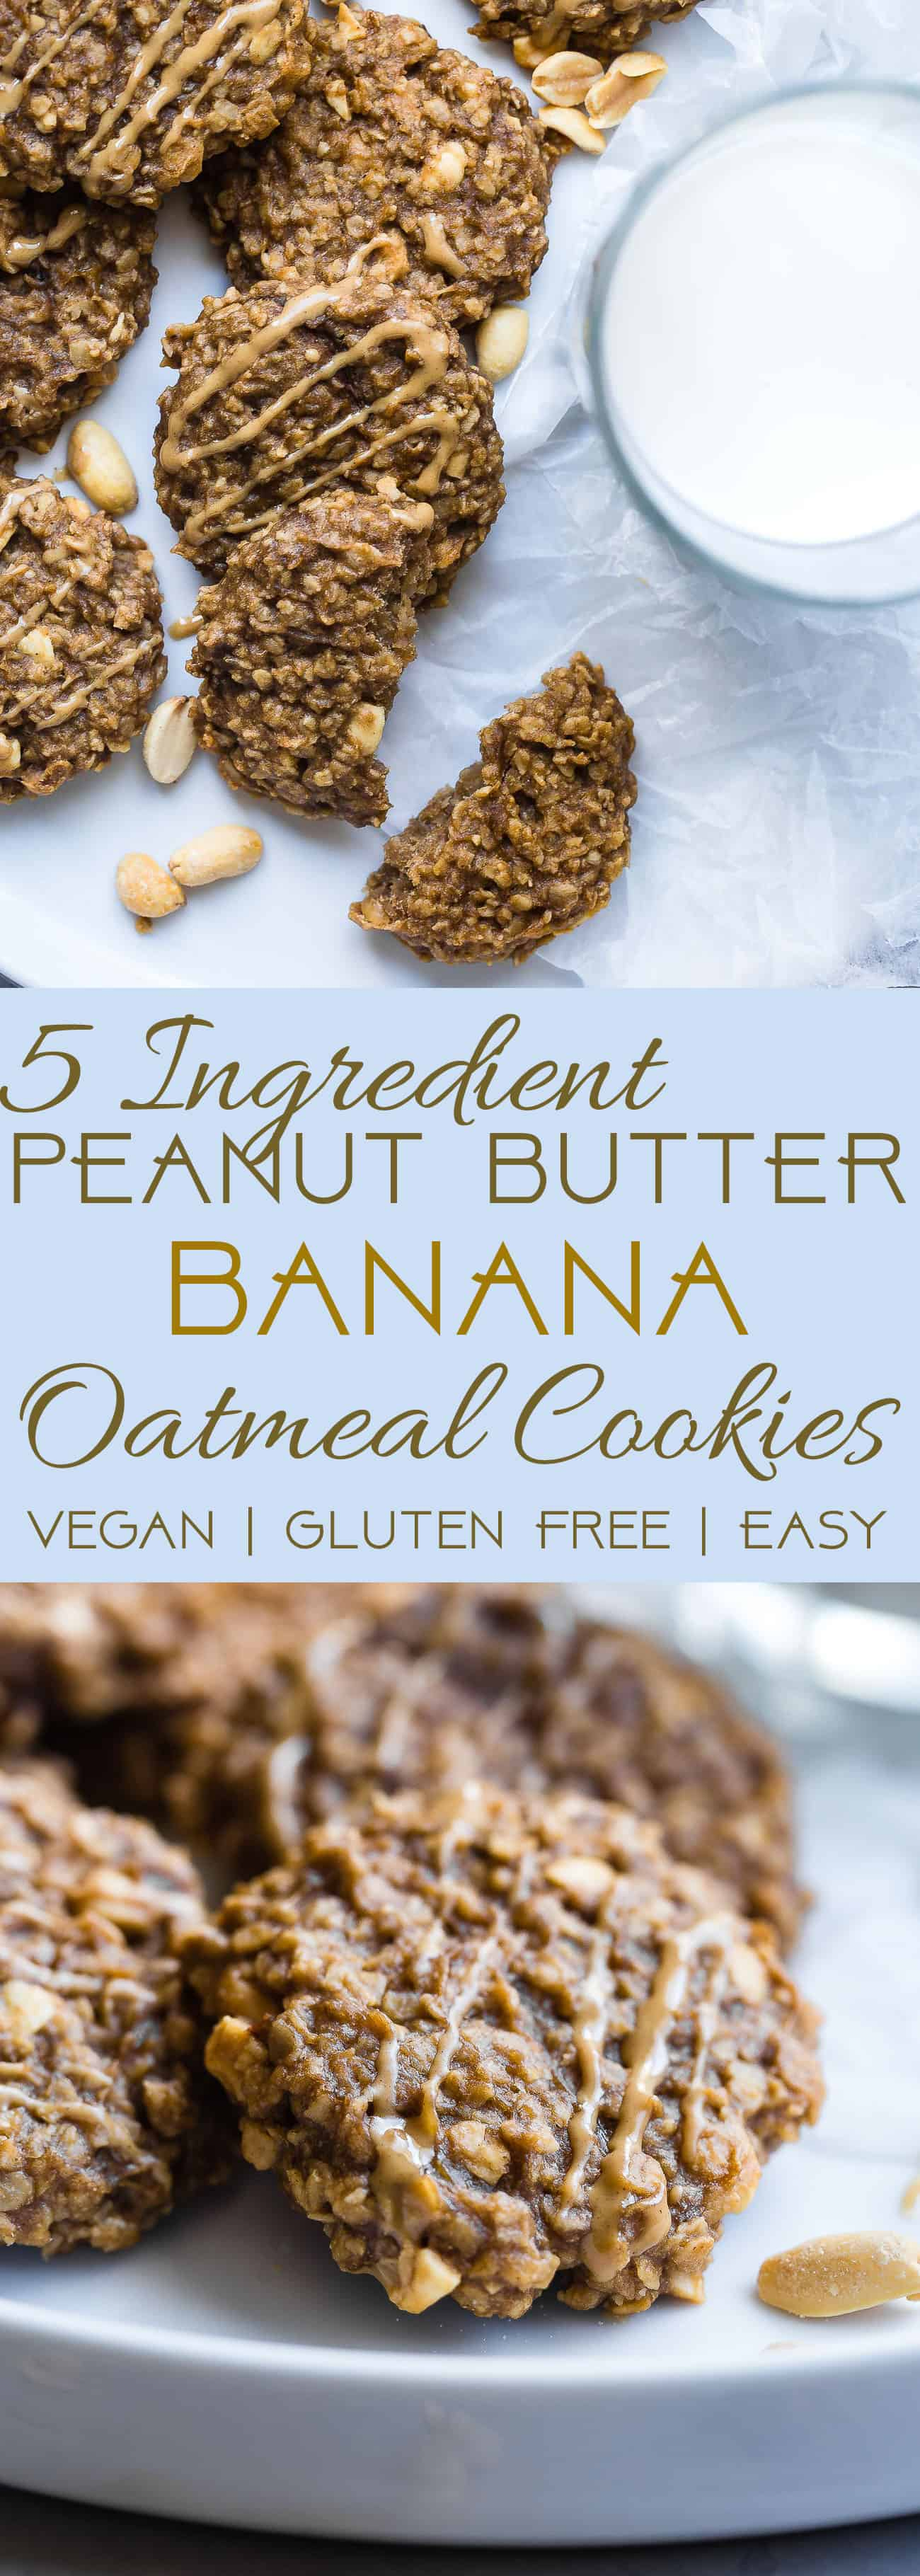 Healthy Peanut Butter Oatmeal Banana Cookies - These gluten free oatmeal cookies use only 5 simple ingredients and are dairy free and vegan friendly! A healthy treat for kids and adults that can be a breakfast or snack! | Foodfaithfitness.com | @FoodFaithFit